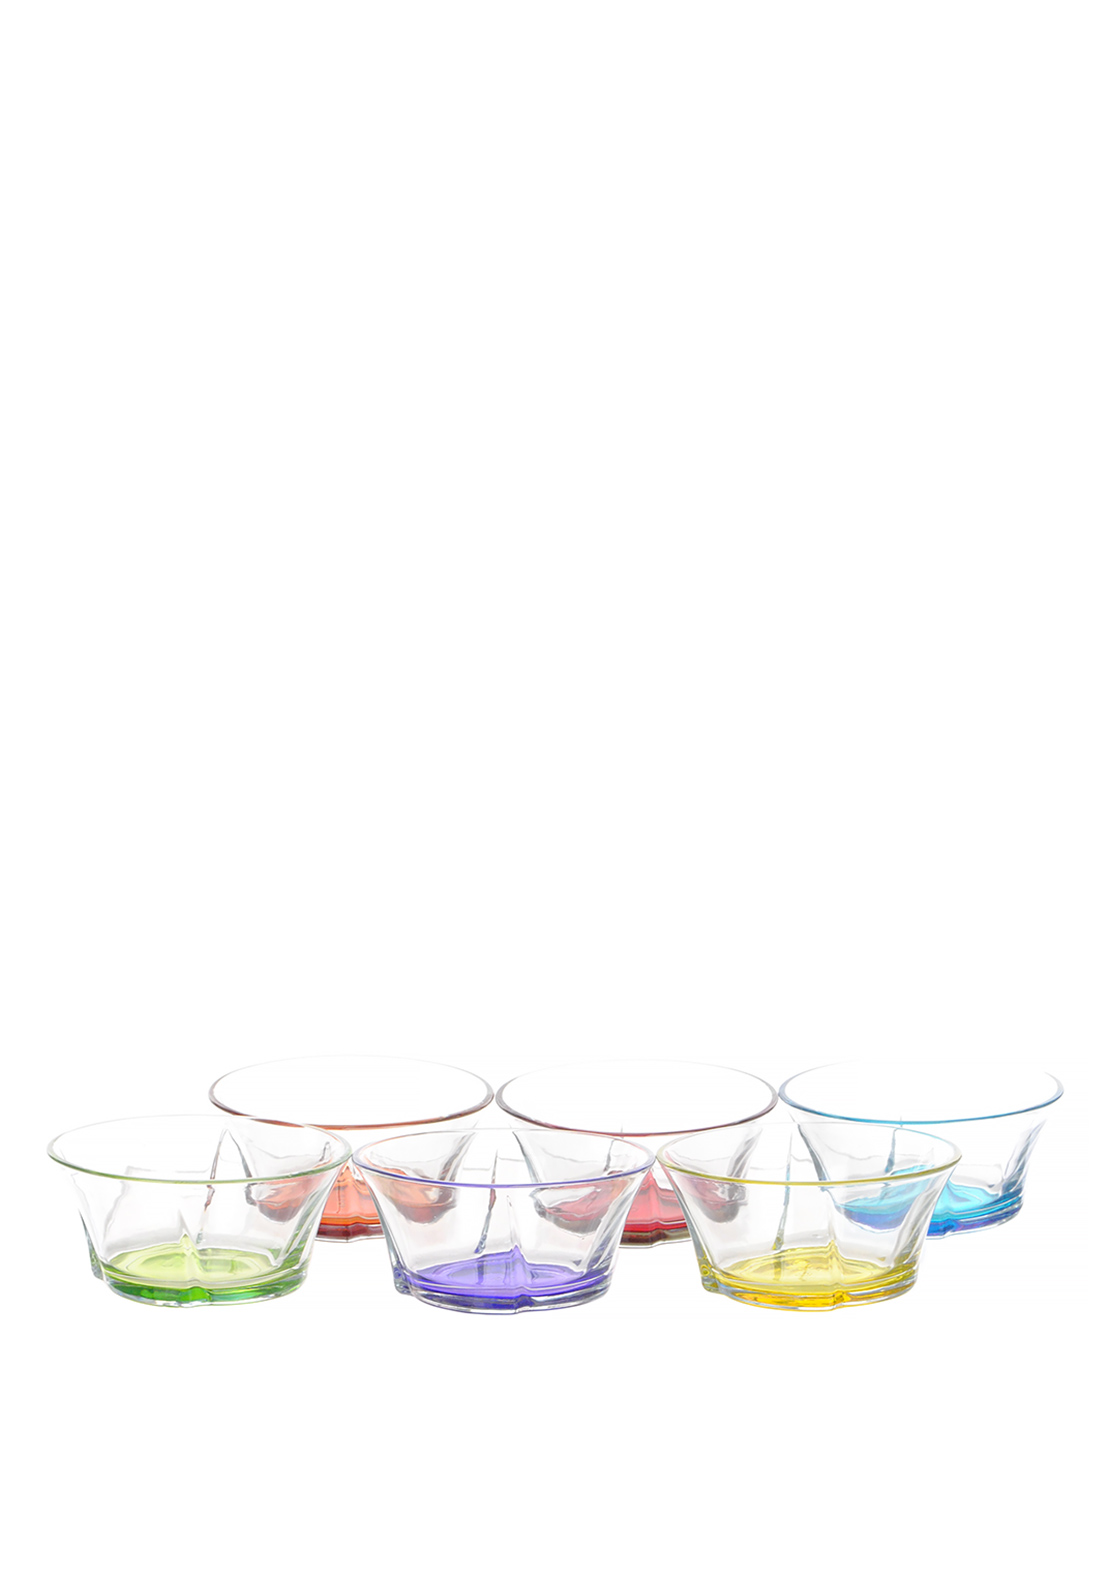 Symphony Prism Serving Bowls, set of 6